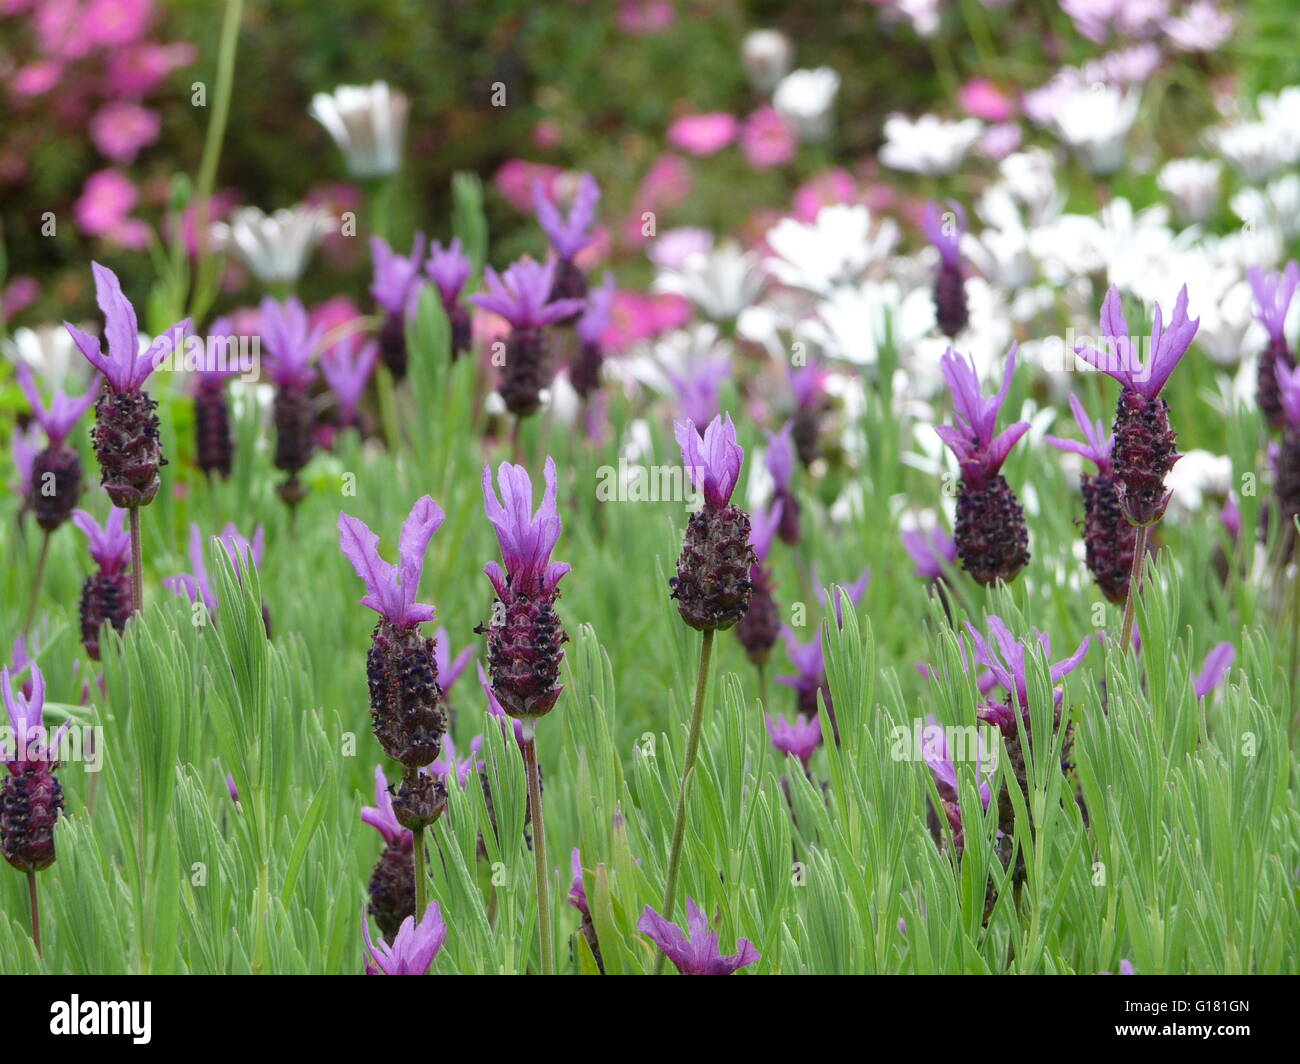 About Lavender Plants (with Pictures)